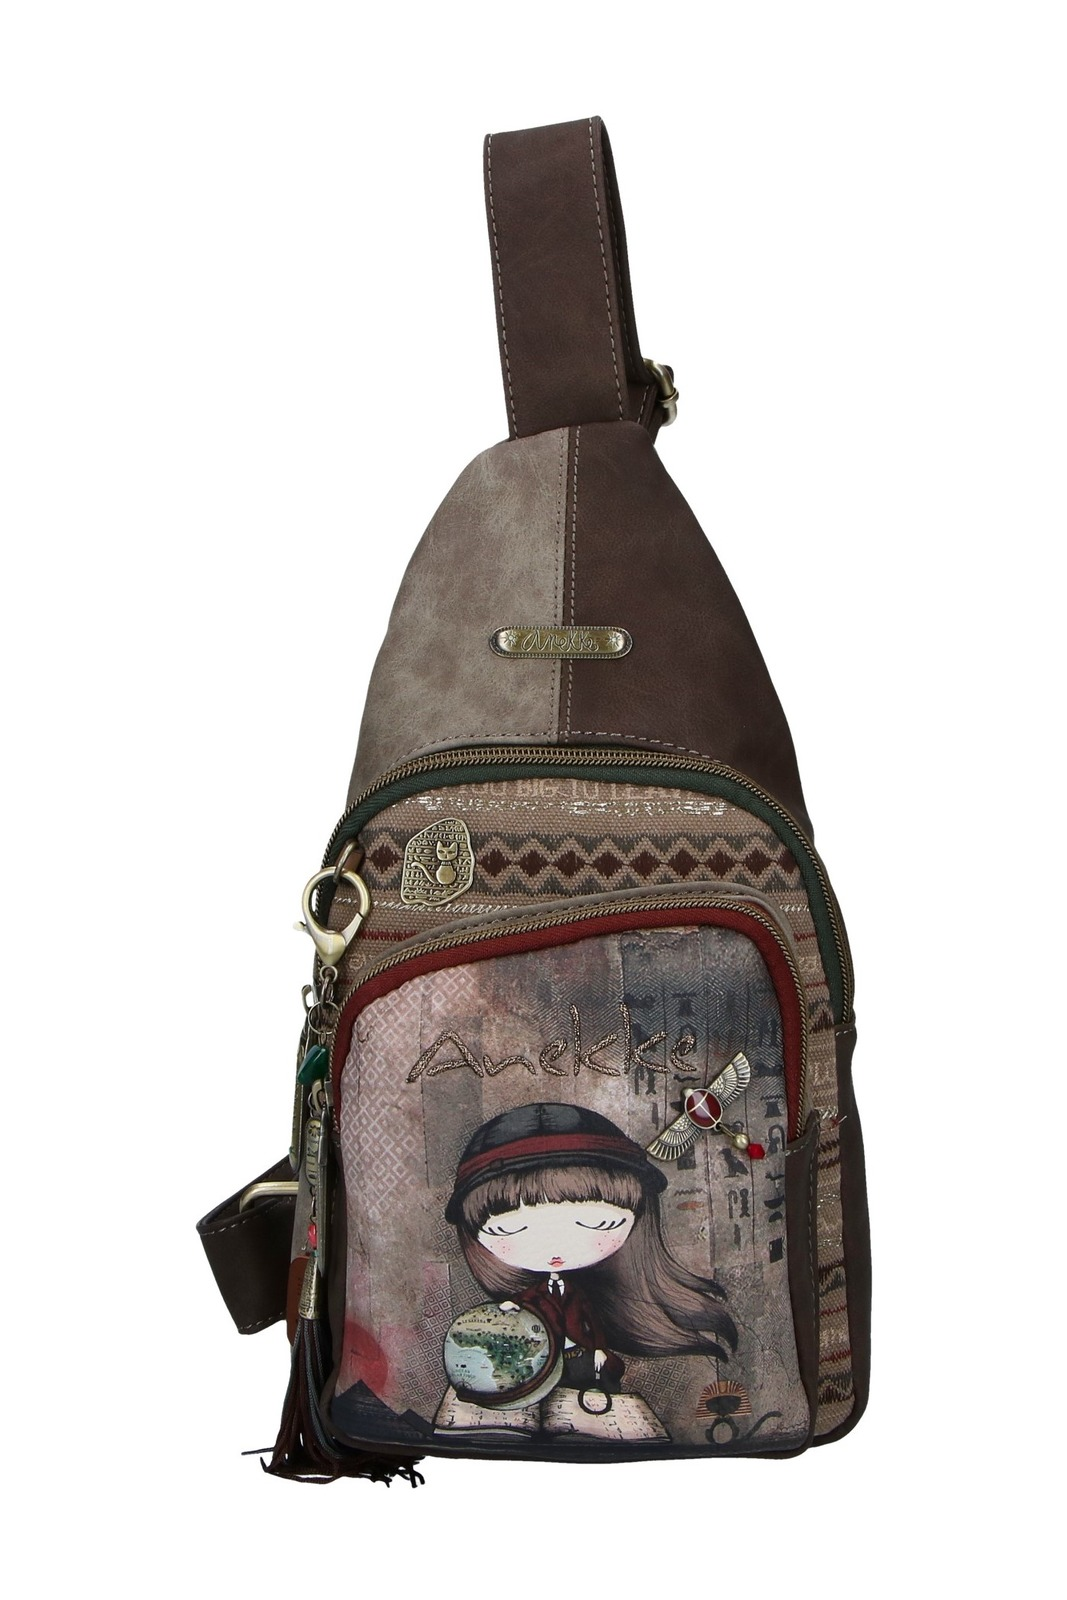 Anekke Small Backpack Egypt with an Exploradora Motif